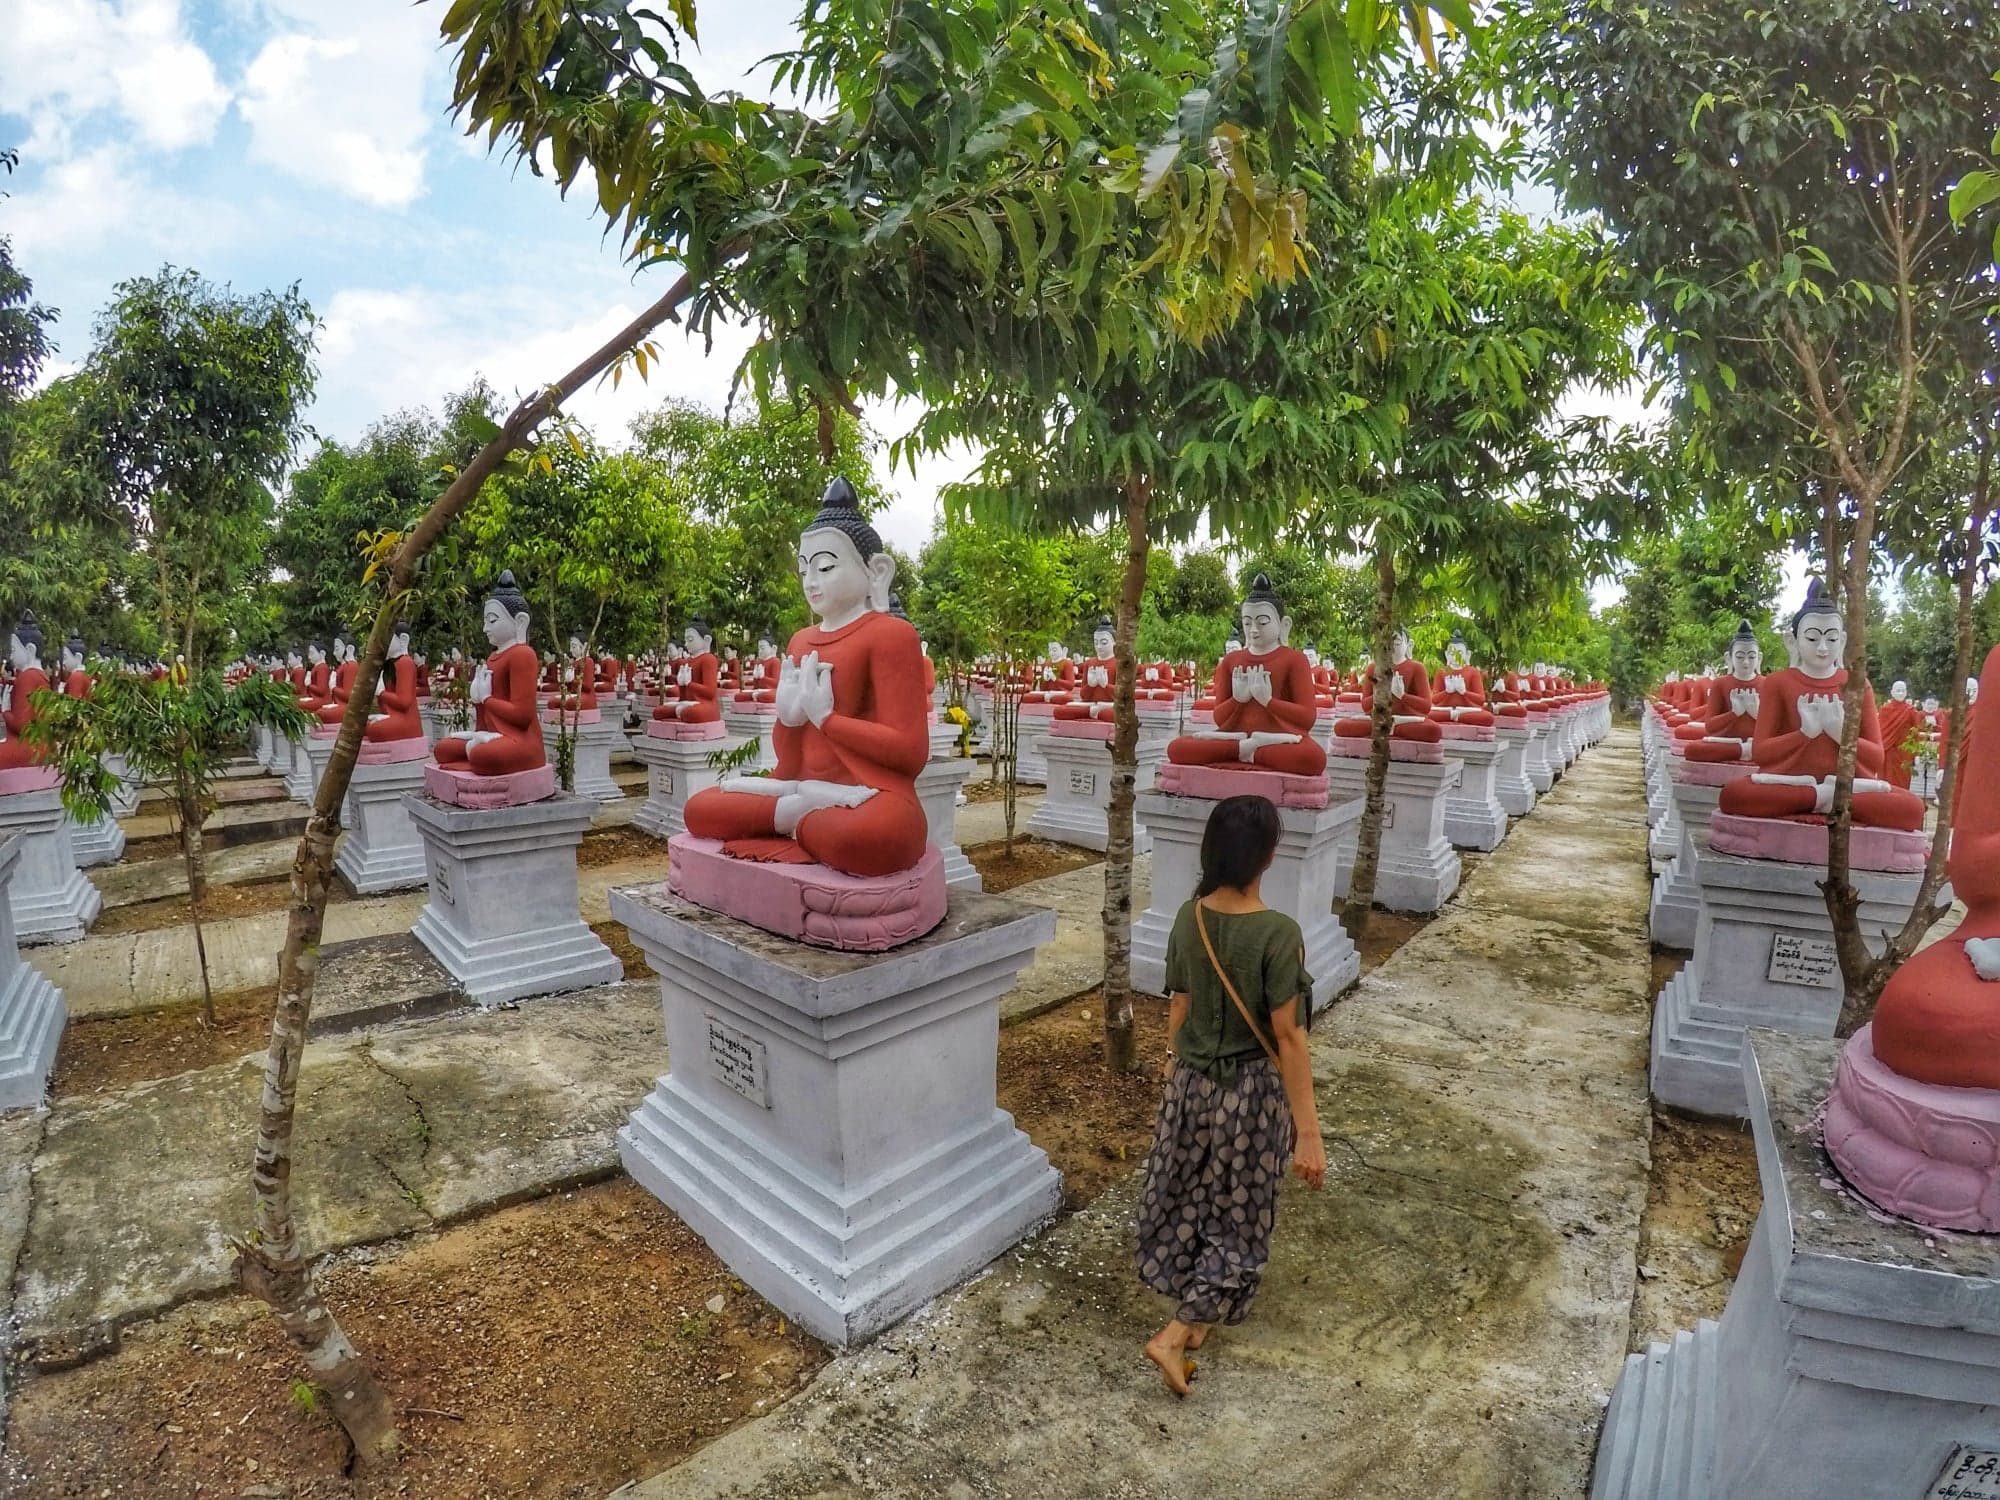 What To Do in Yangon - Kyaik Par Buddha Statue 1000